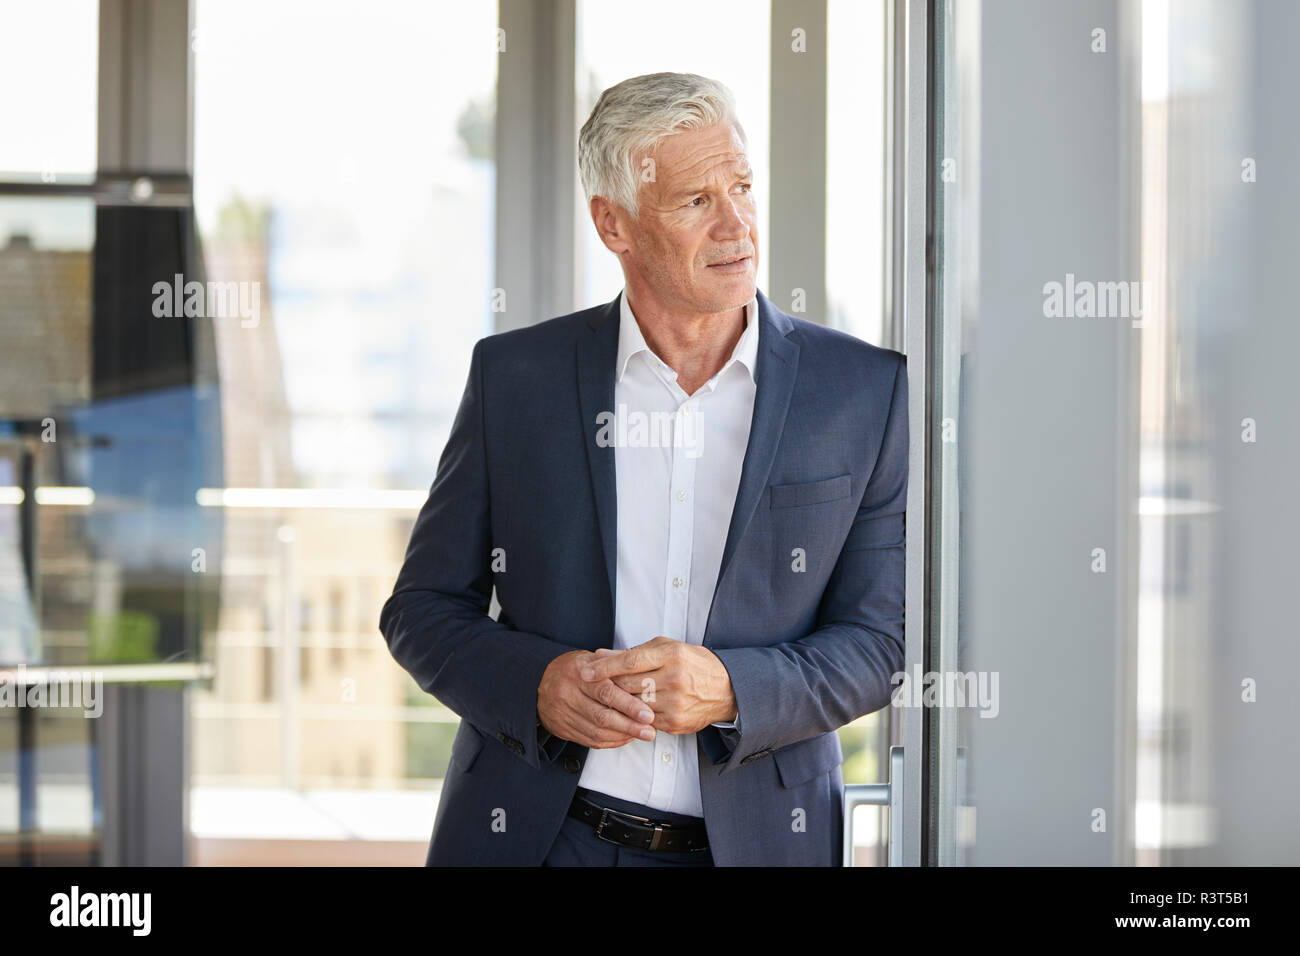 Worried businessman standing by window, thinking Stock Photo